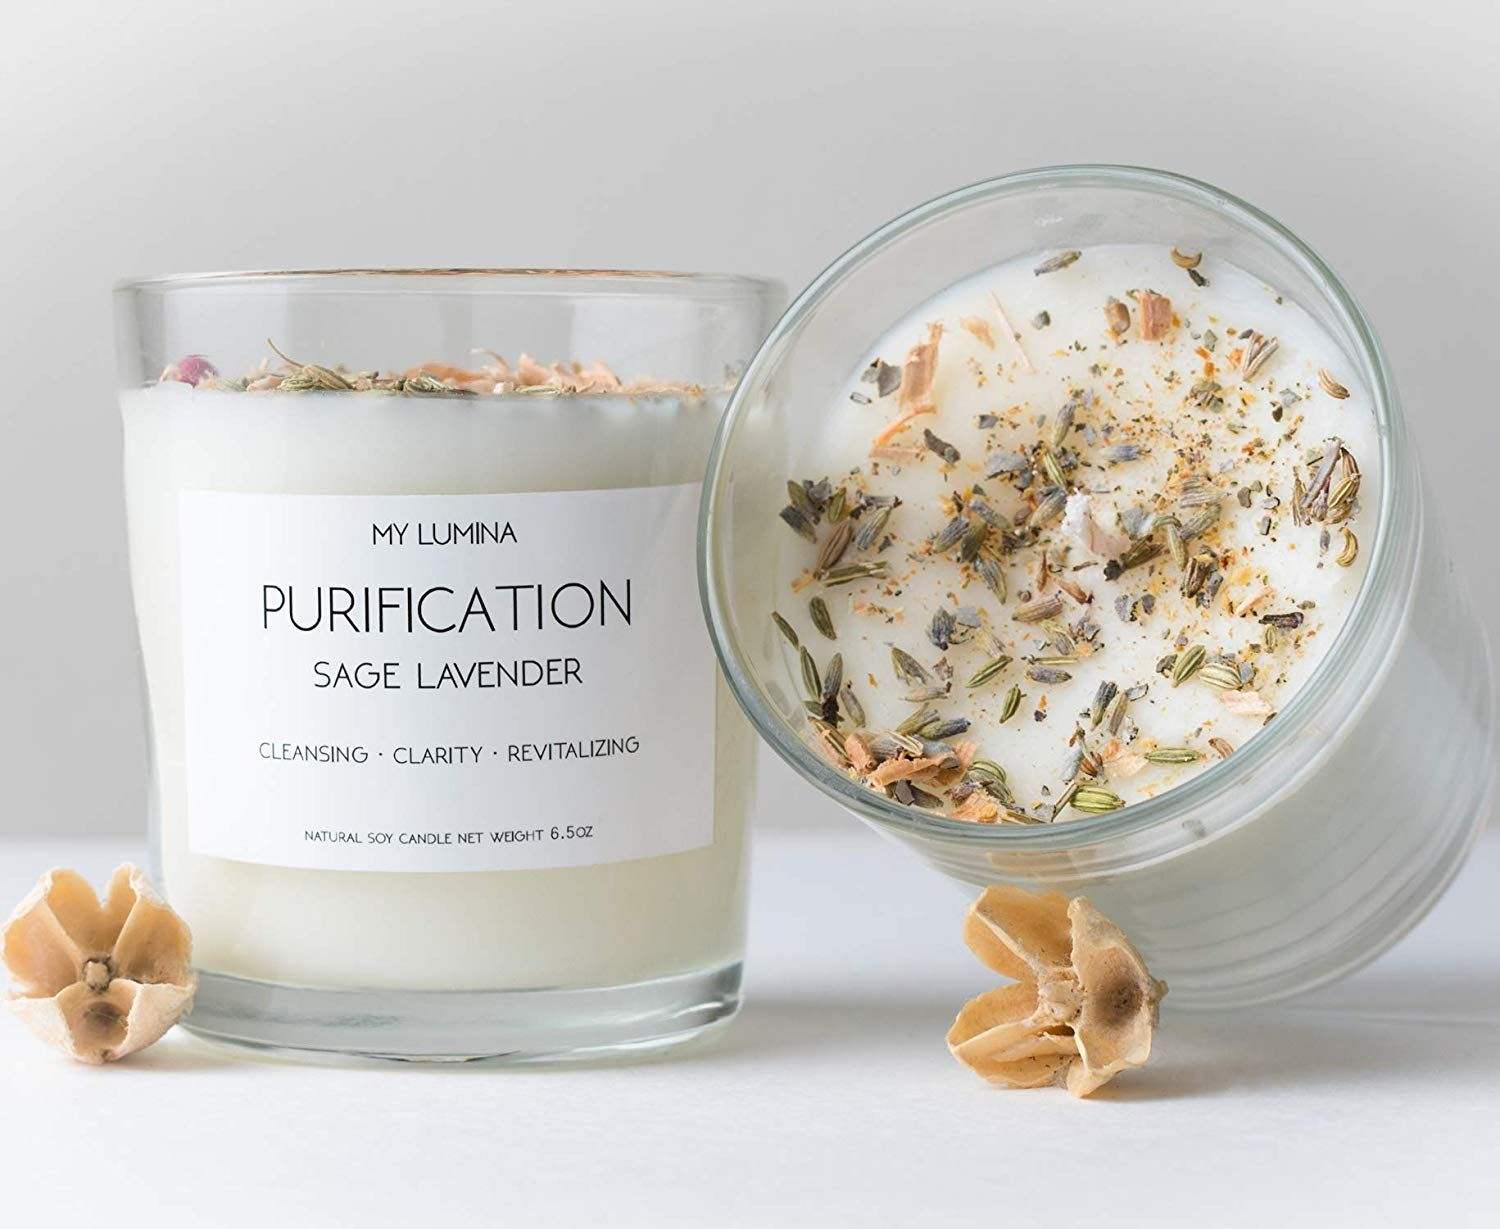 Aromatic Handmade 6 5 Oz Purification Candle With Sage Lavender Soy Candle Handmade Candle Perfect Gift In 2020 Healing Candles Soy Candles Aromatherapy Candles